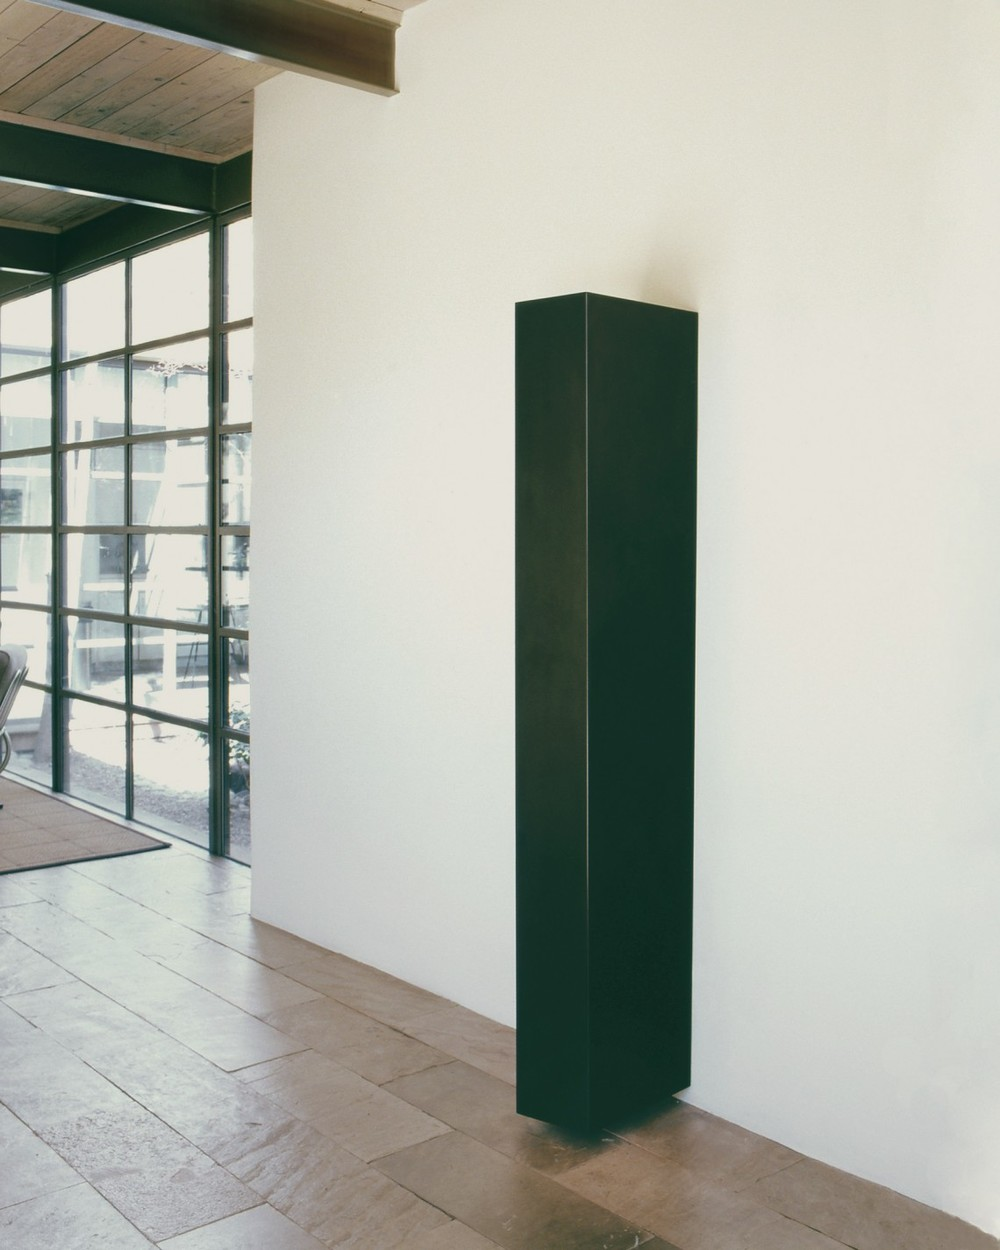 Long rectangle made of graphite, attached to a white wall, but floating just above the floor.